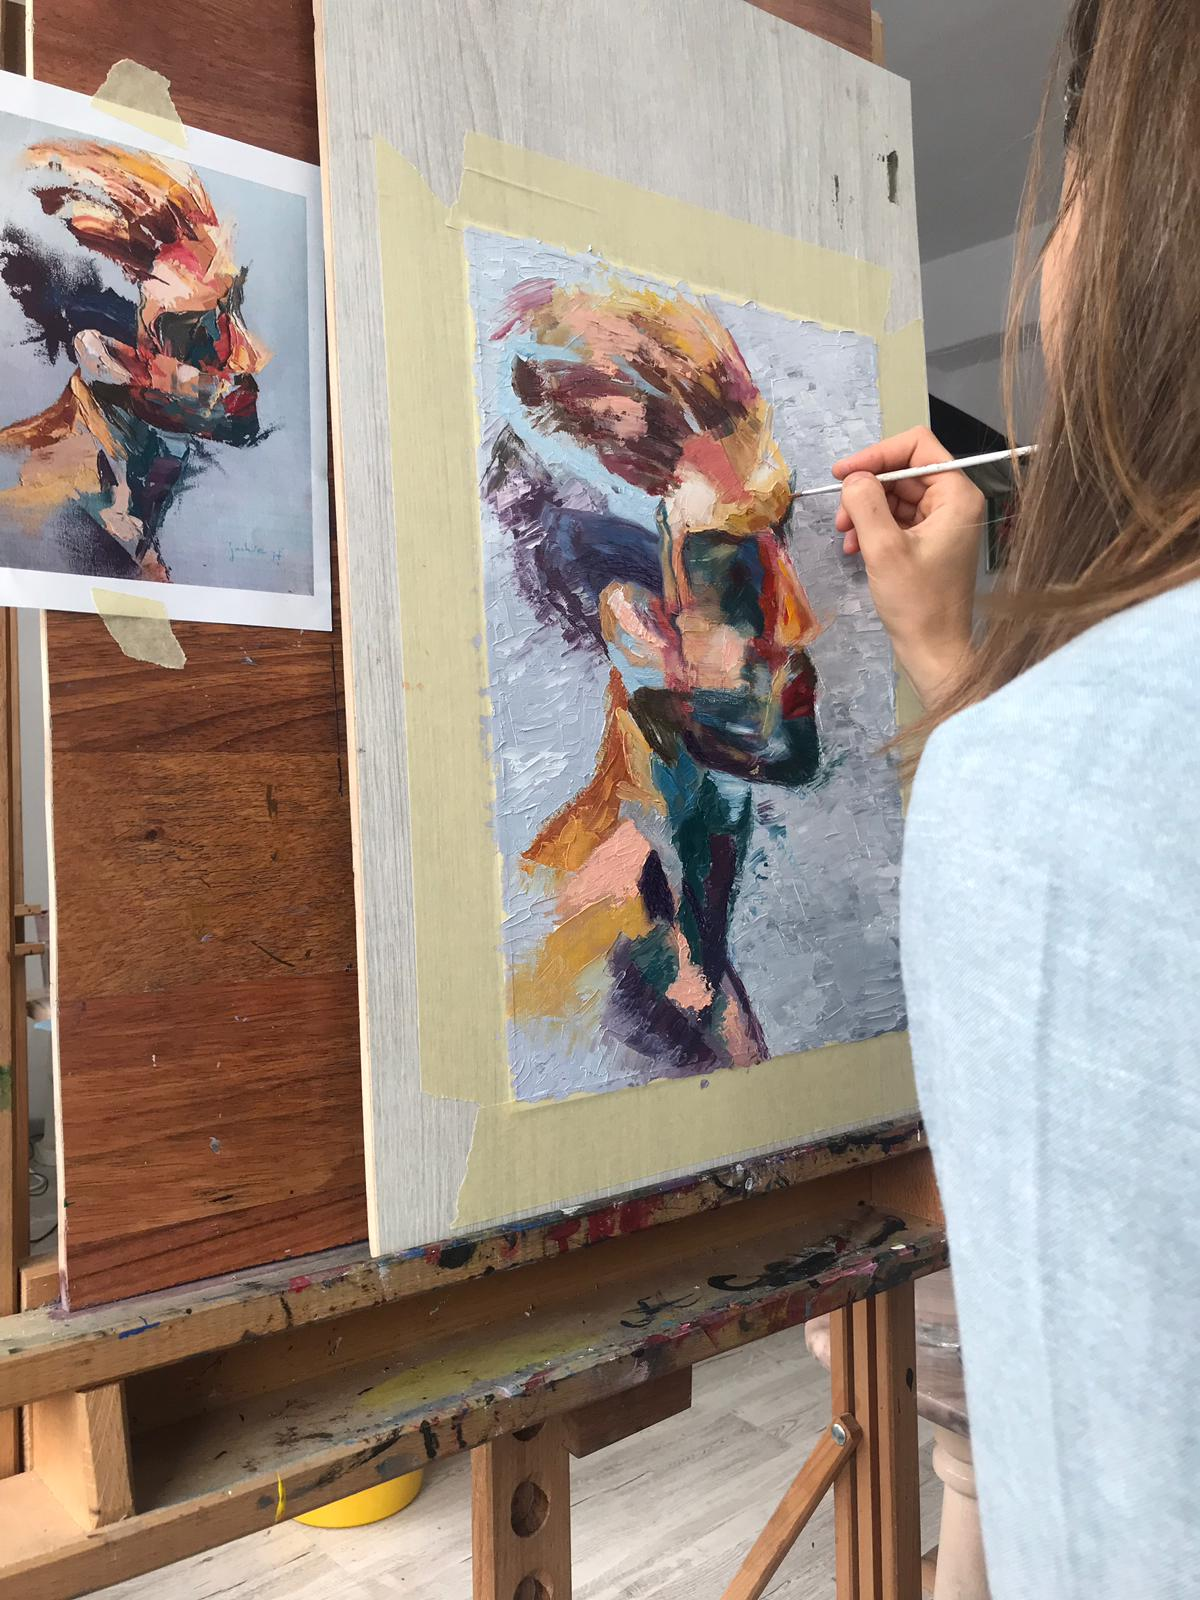 curs-pictura-online-artretreat-marian-moncea